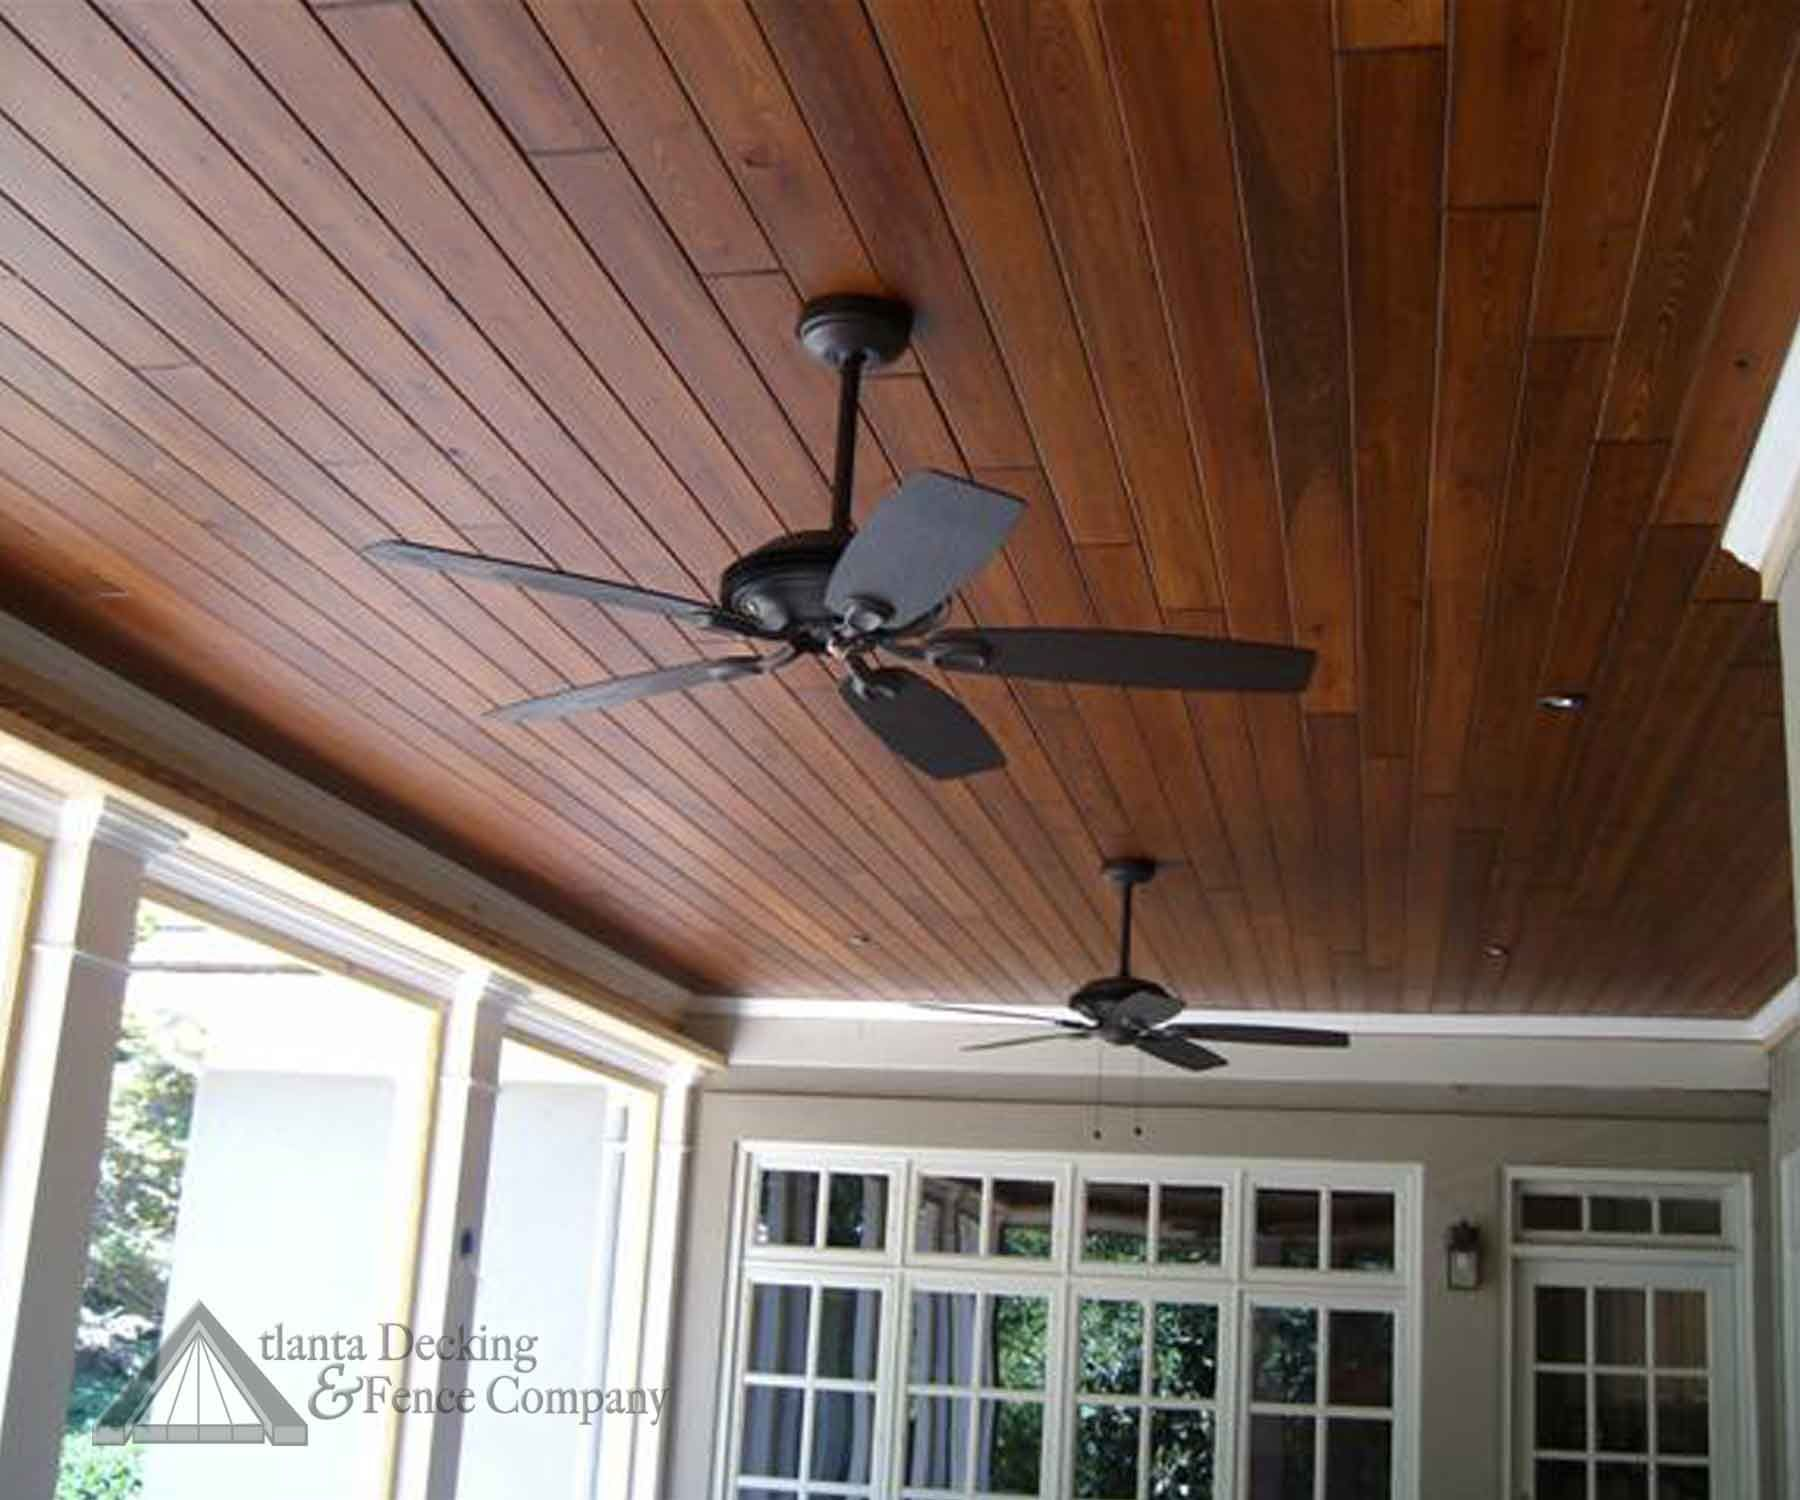 or instead of painting, stain the wood ceiling on the porch - dark